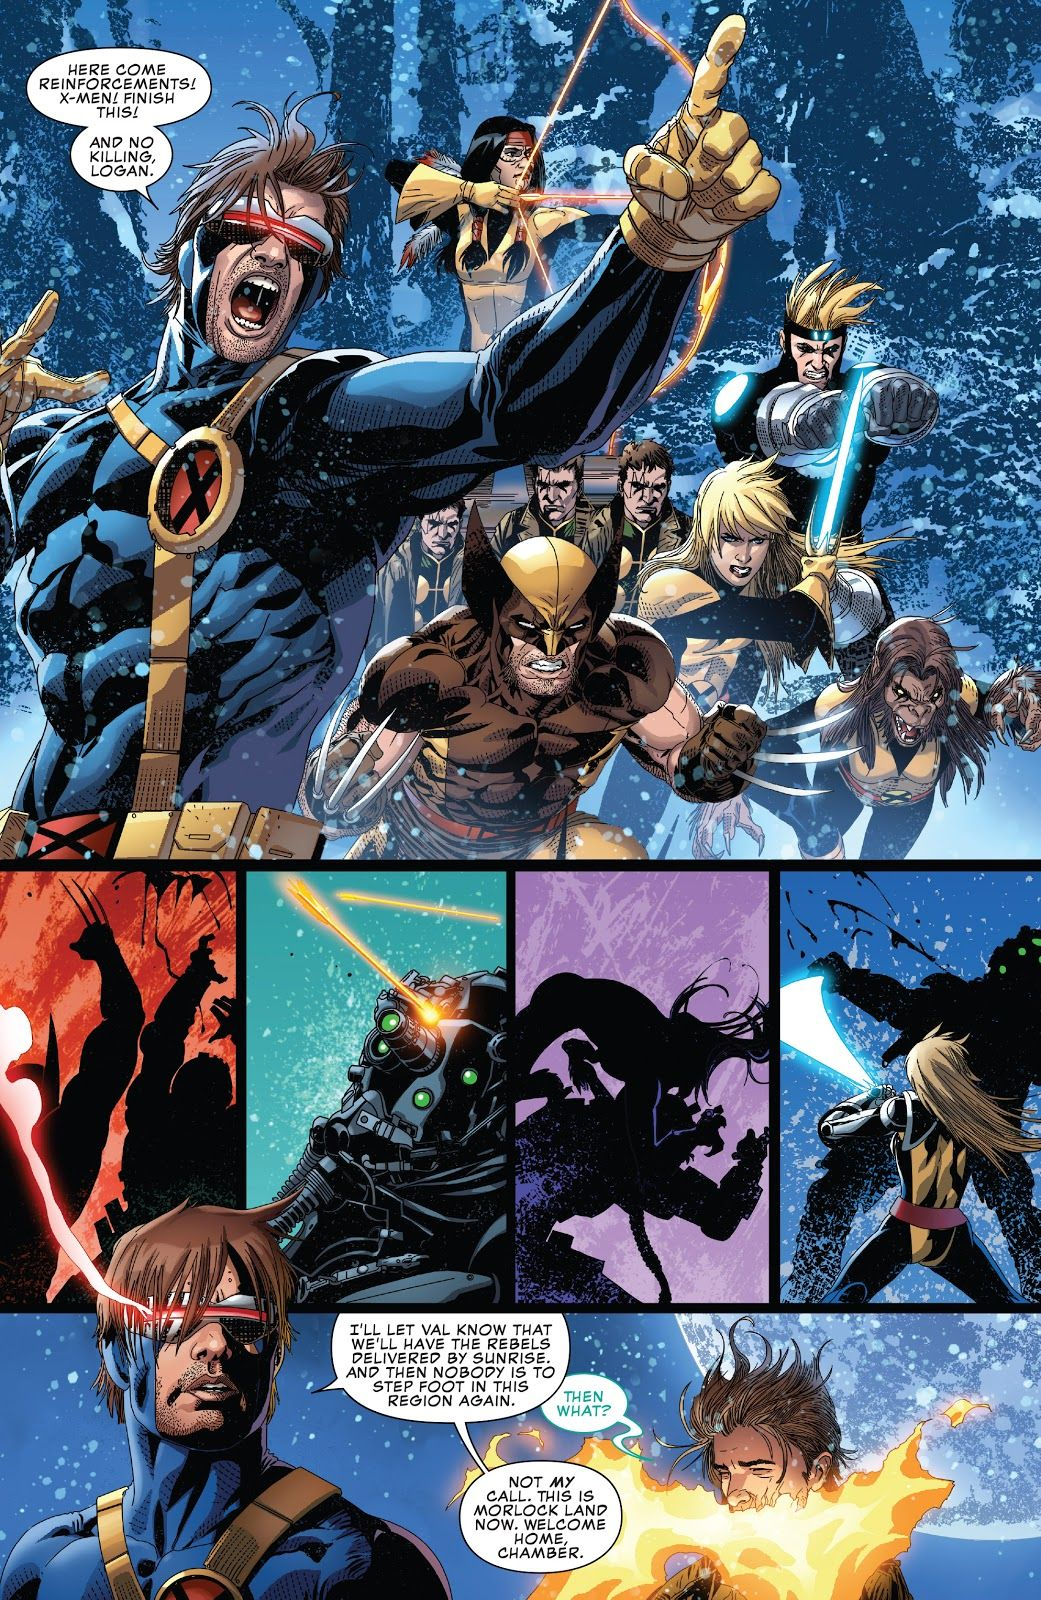 Cyclops Helps Mutantkind One Morlock At A Time In Uncanny X Men 14 Cyclops X Men X Men Superhero Comic